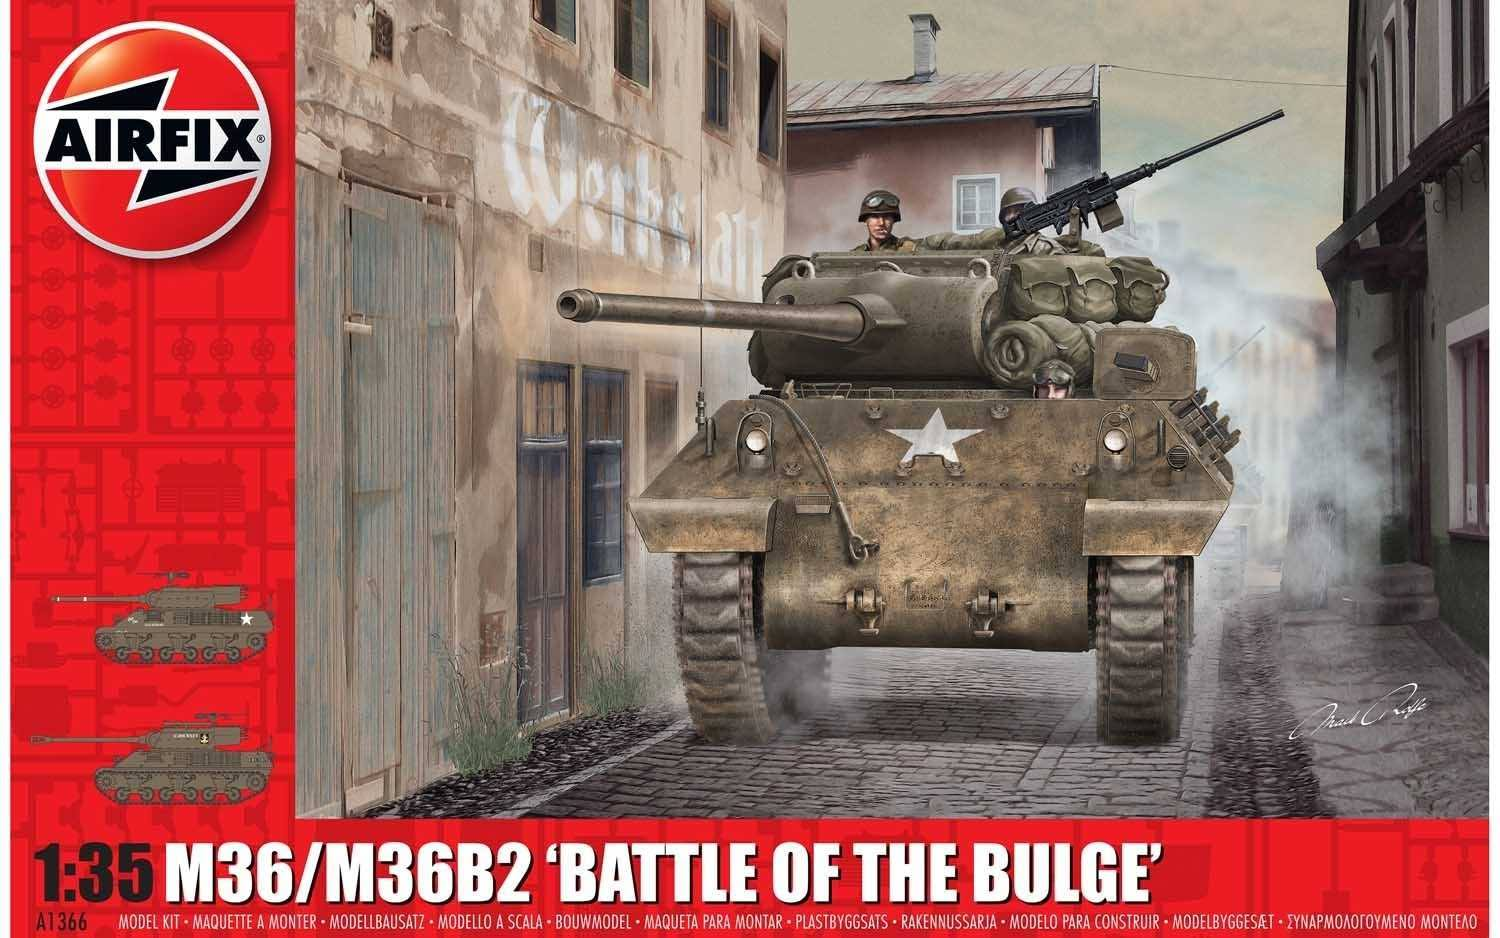 Airfix A1366 M36/M36B2 Battle of The Bulge 1:35 Scale Kit